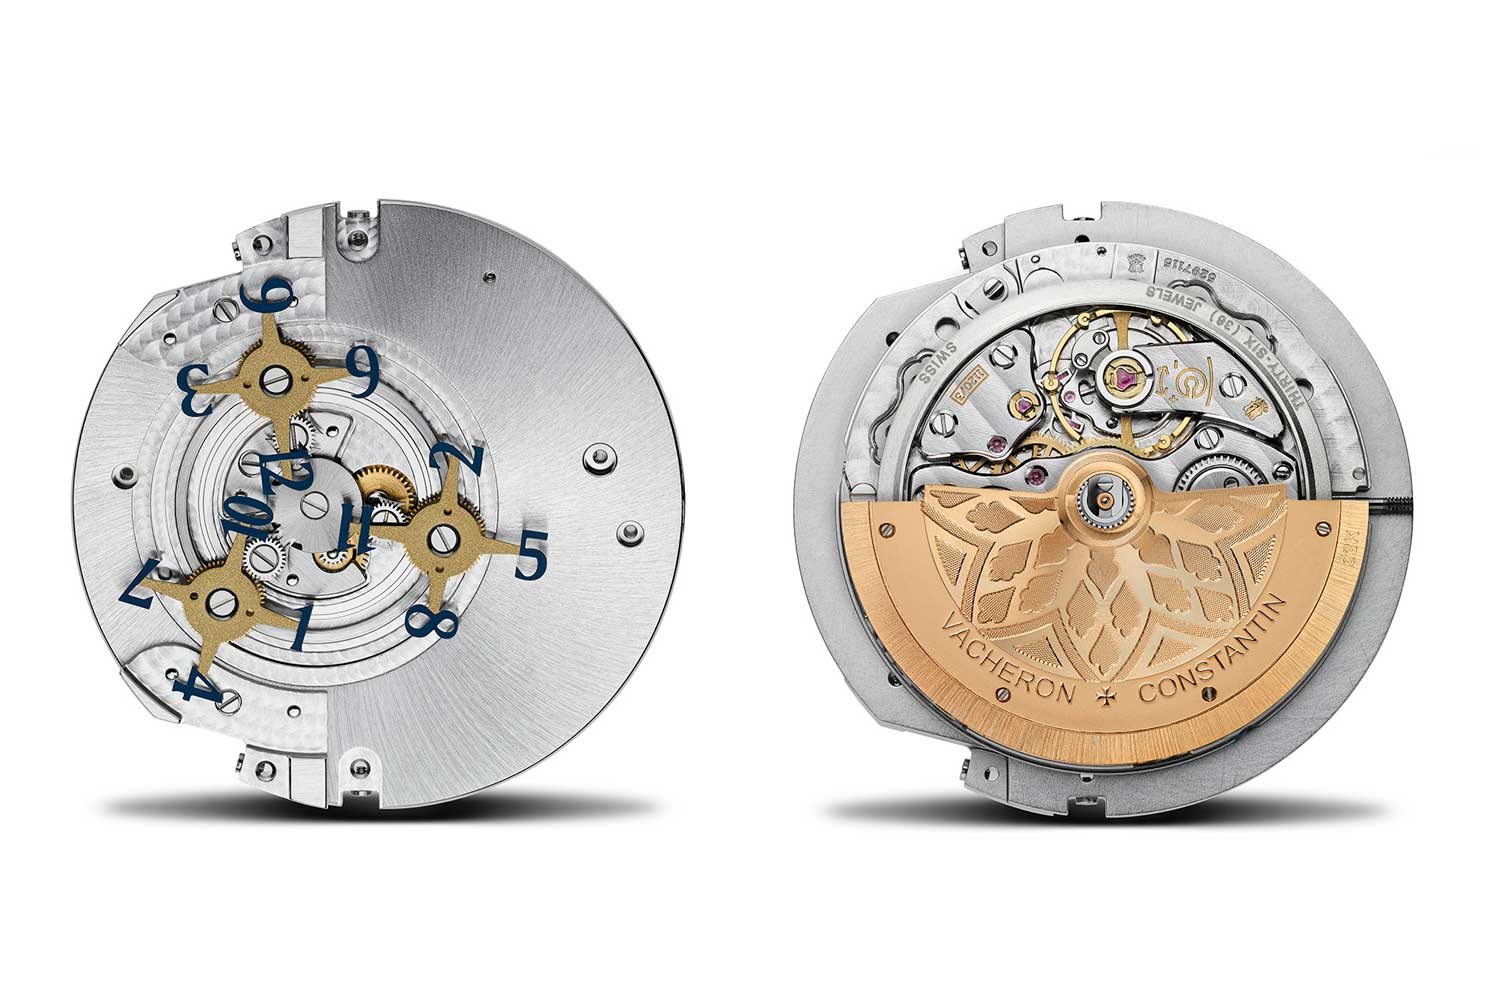 The front and back views of the caliber 1120AT by Vacheron Constantin show how the satellite display works.